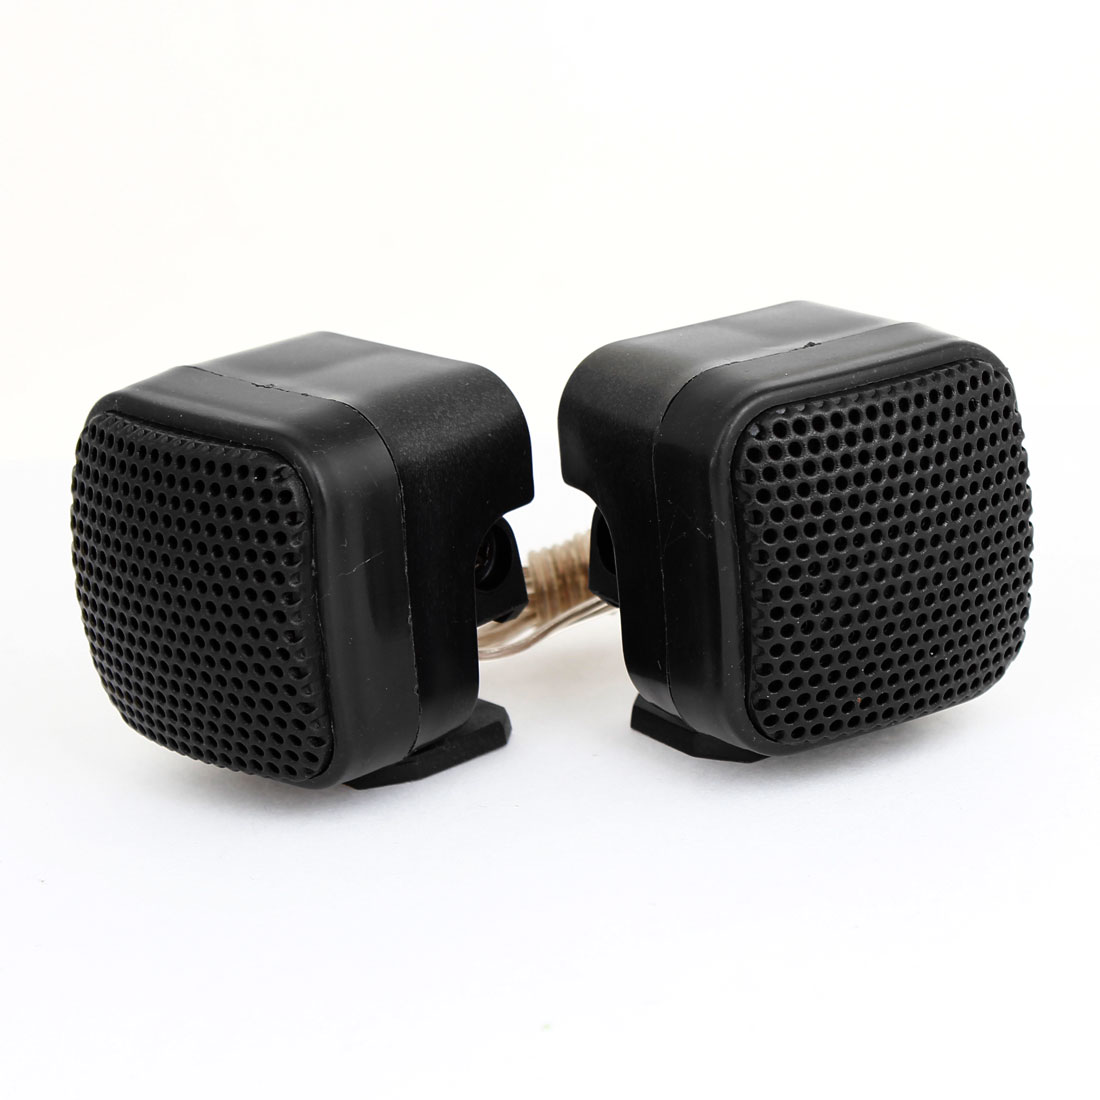 DC 12V 500W Dome Loud Speaker Tweeter 2PCS for Car Auto